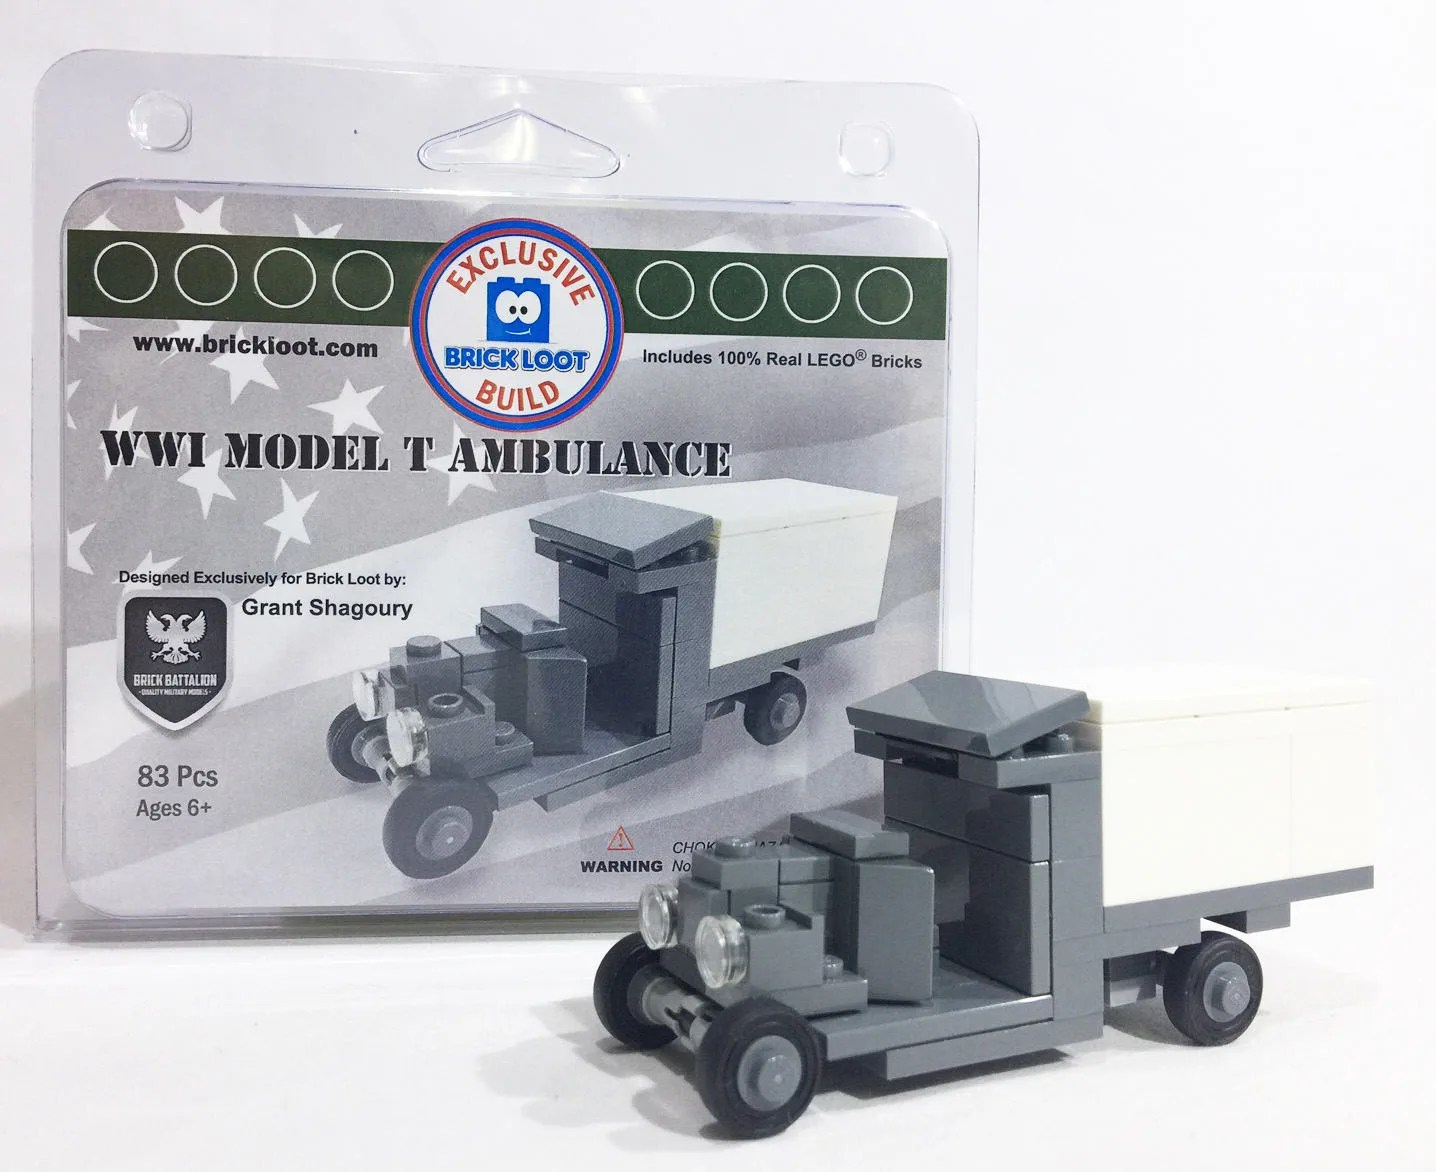 Cubs lego   Etsy Exclusive Brick Loot Model T Ambulance by Brick Battalion   100  LEGO Bricks